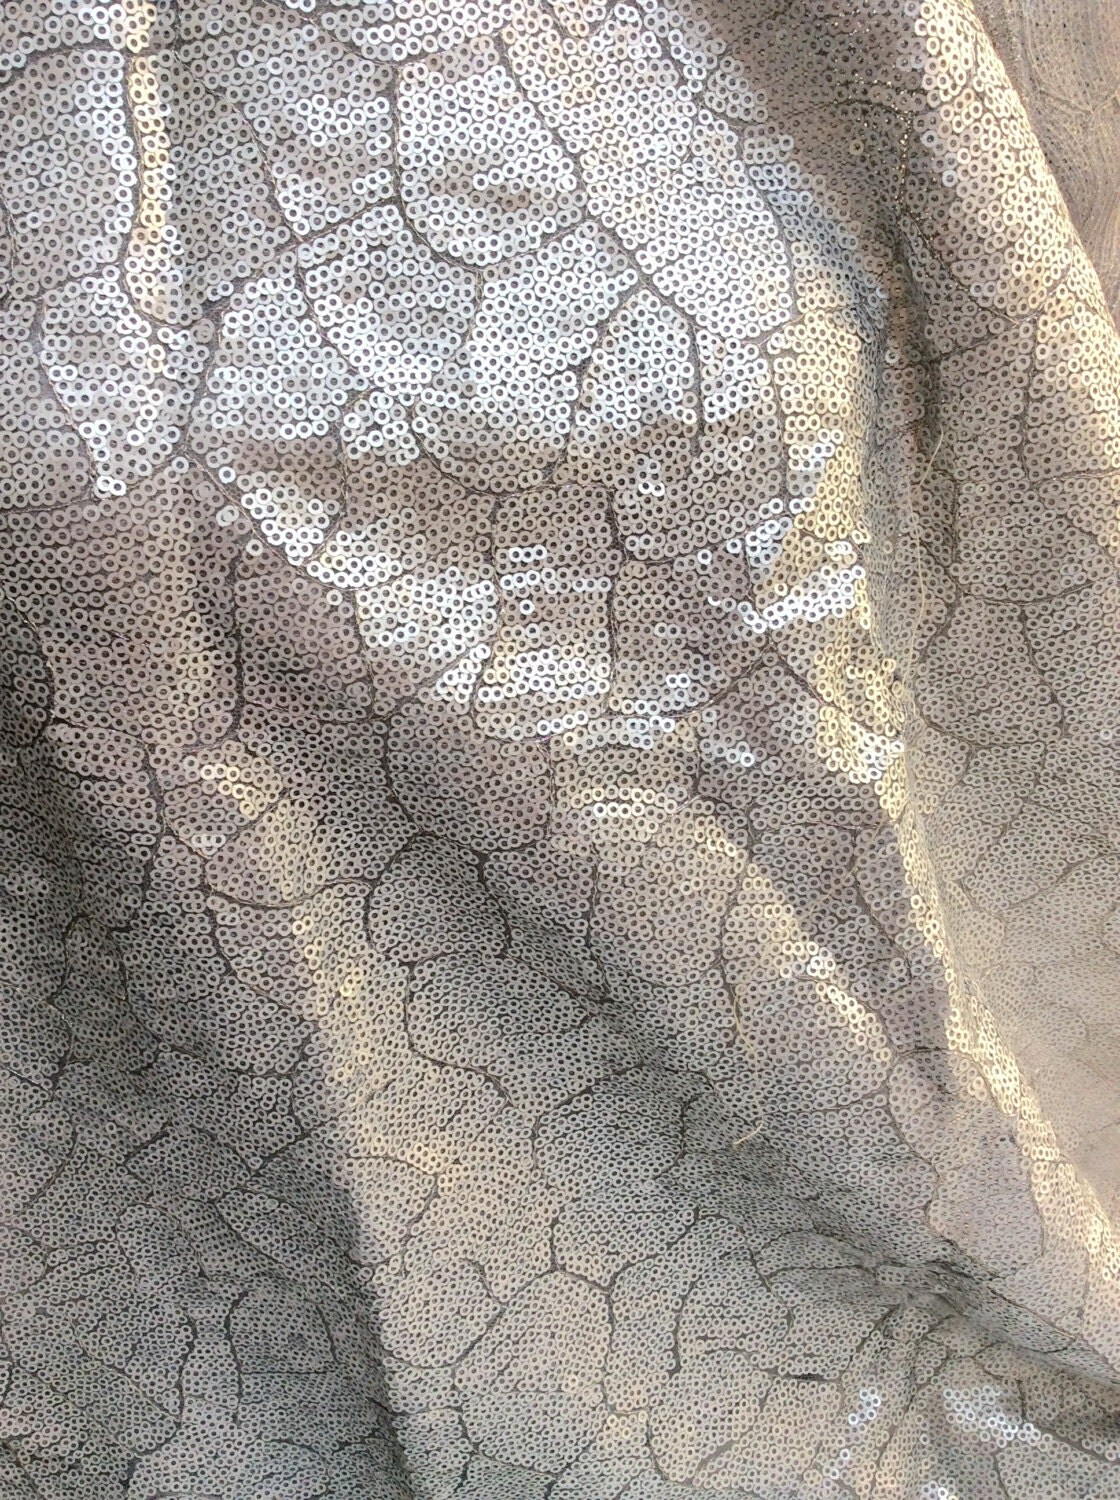 Silver Sequins Fabric Silver Lace Silver Sequins Sequin